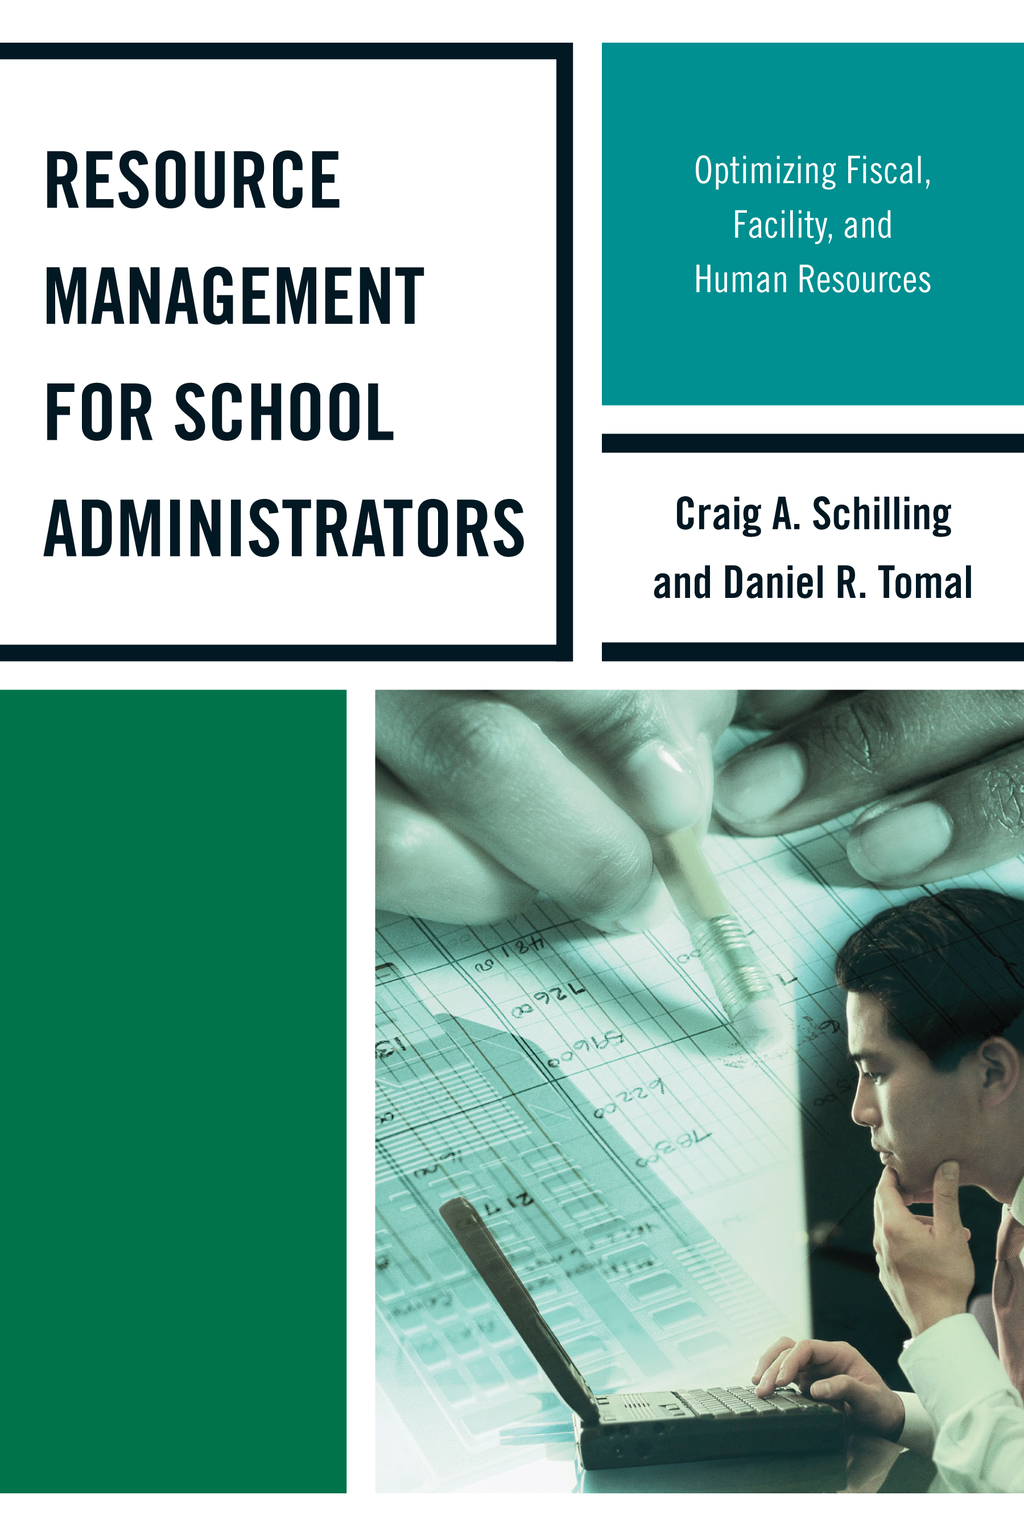 Resource Management for School Administrators By: Craig A. Schilling,Daniel R. Tomal